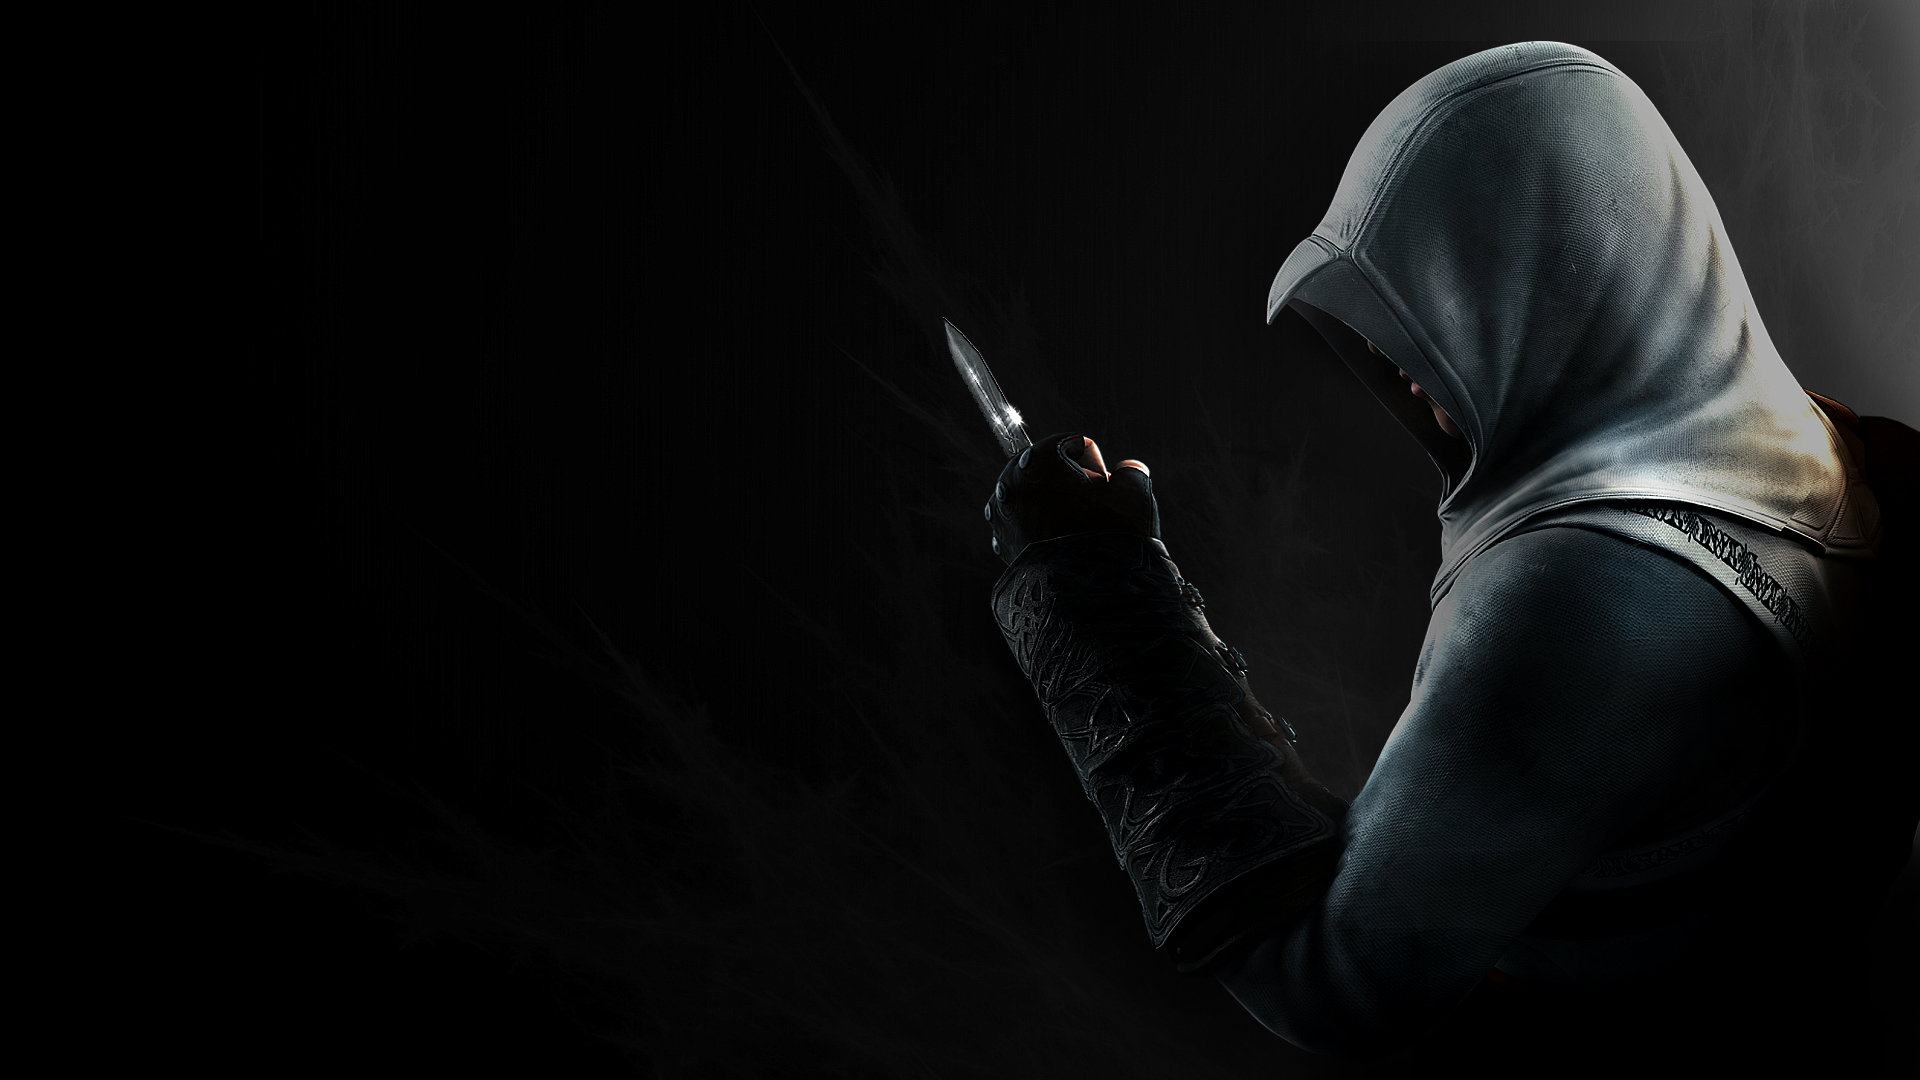 Assassin S Creed Wallpaper Altair By Stramboz On Deviantart